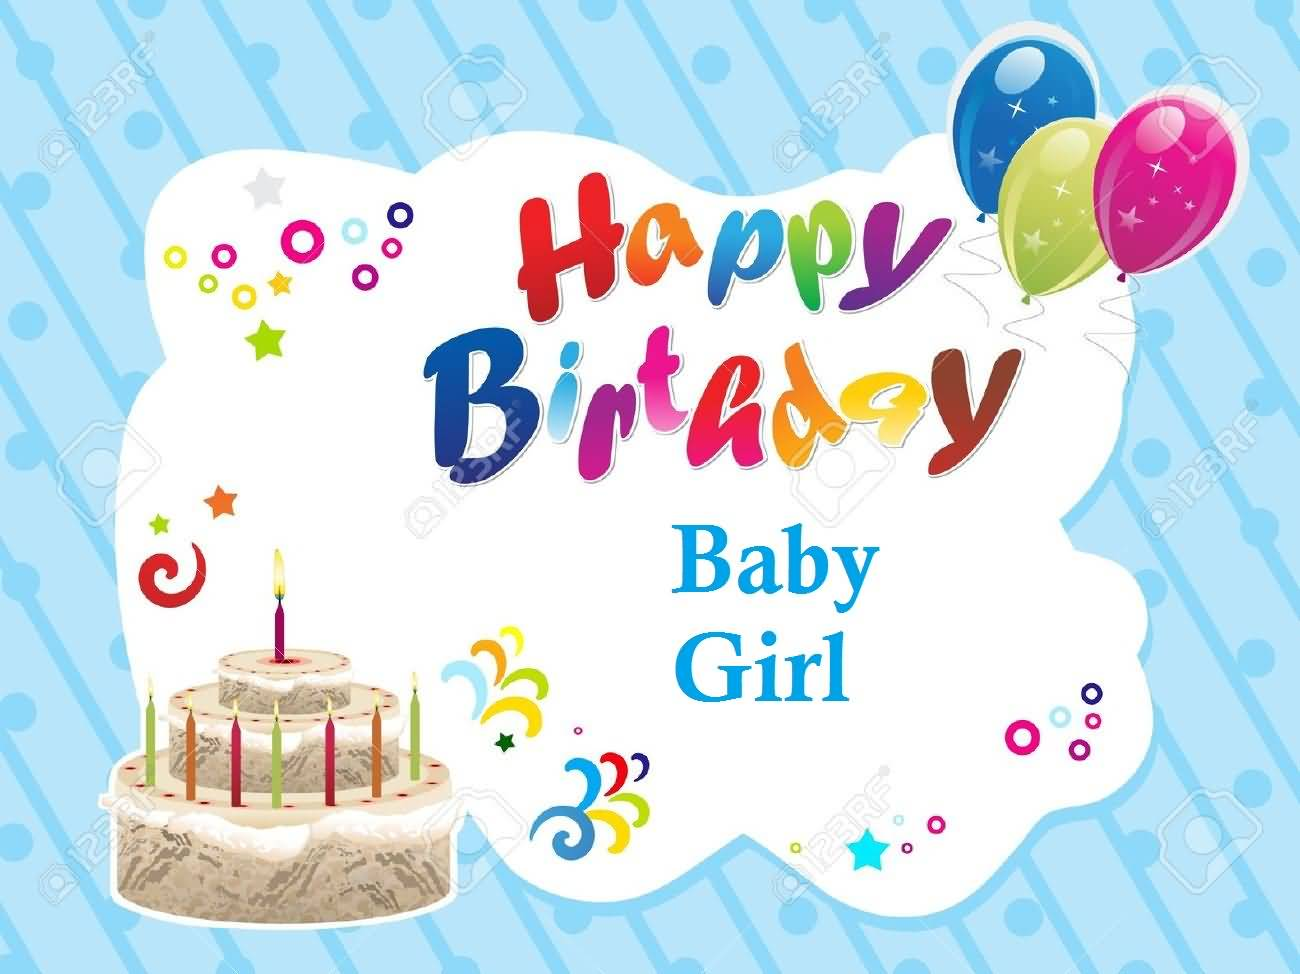 33 Cute Baby Girl Birthday Wishes Picture Image Wallpaper Picsmine